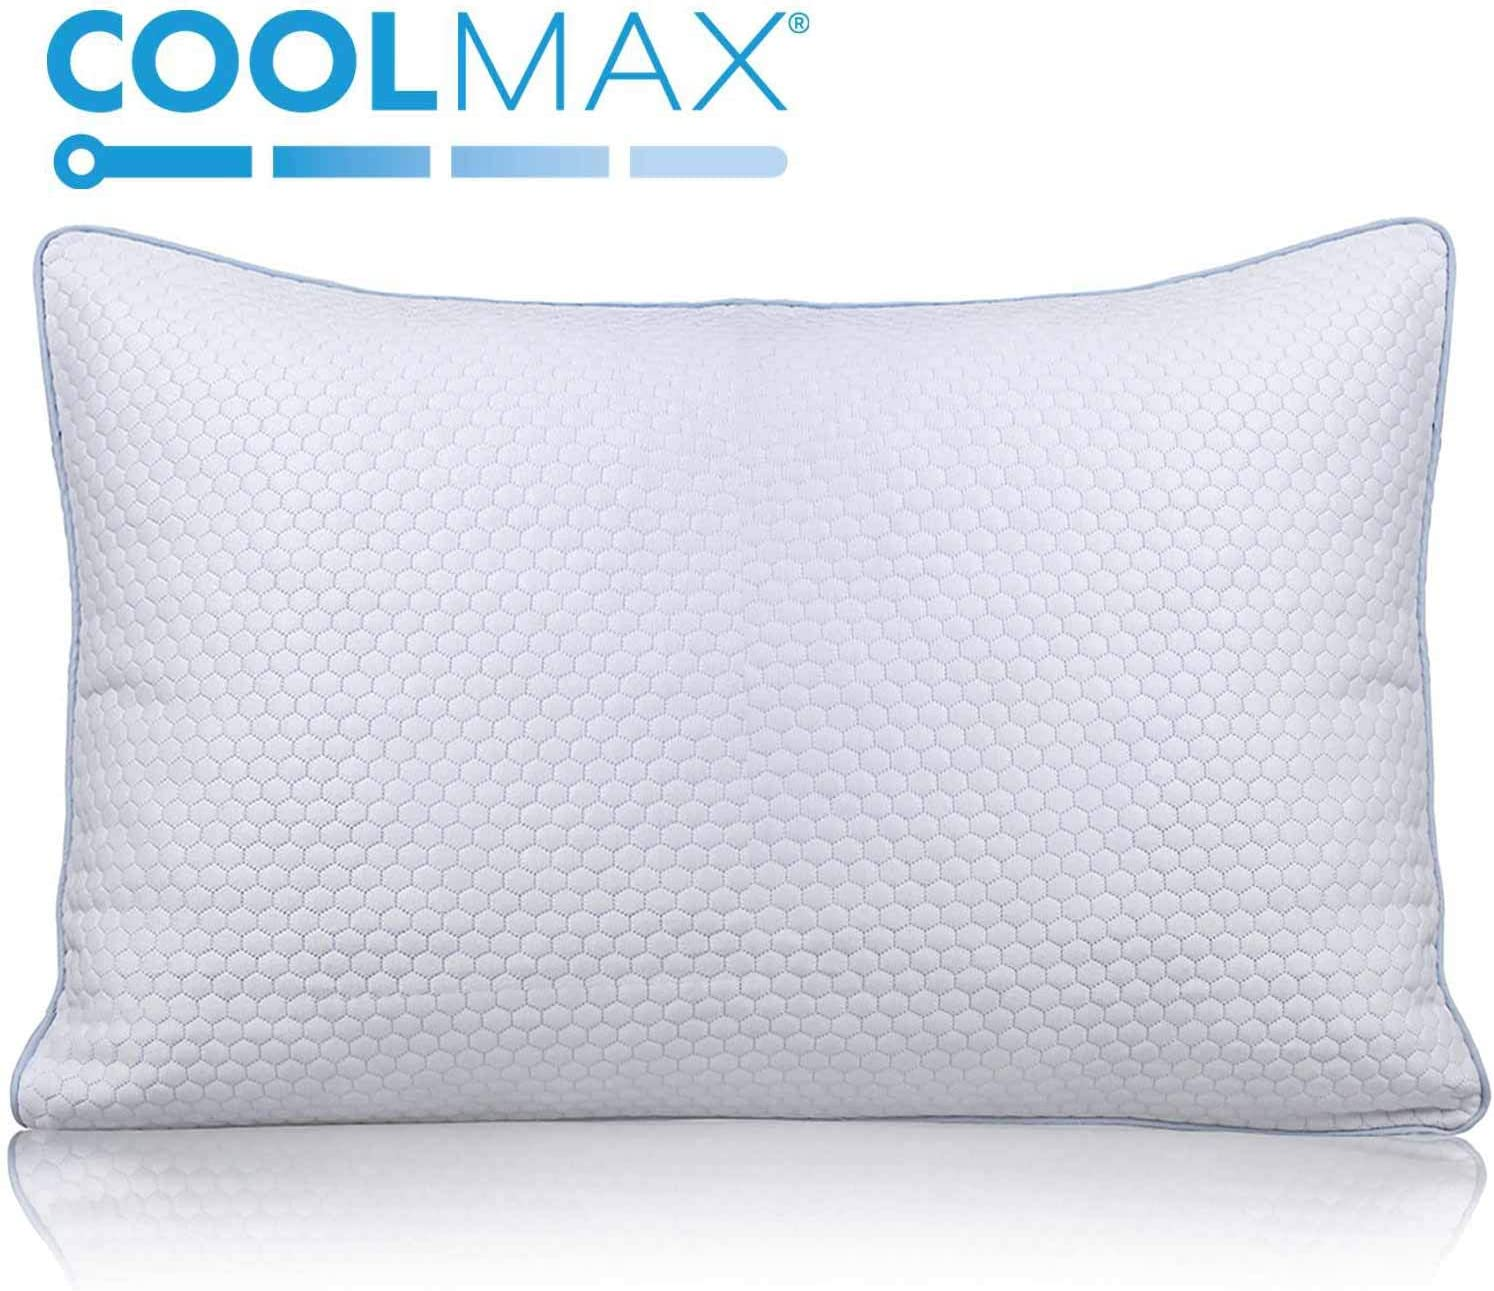 Cooling Shredded Memory Foam Bed Pillow for Sleeping- Adjustable to Thick Thin - Pillow for Side Back Sleepers with Cool Breathable Cotton Case - Soft Firm Support for Therapeutic Neck Pain,Queen Size